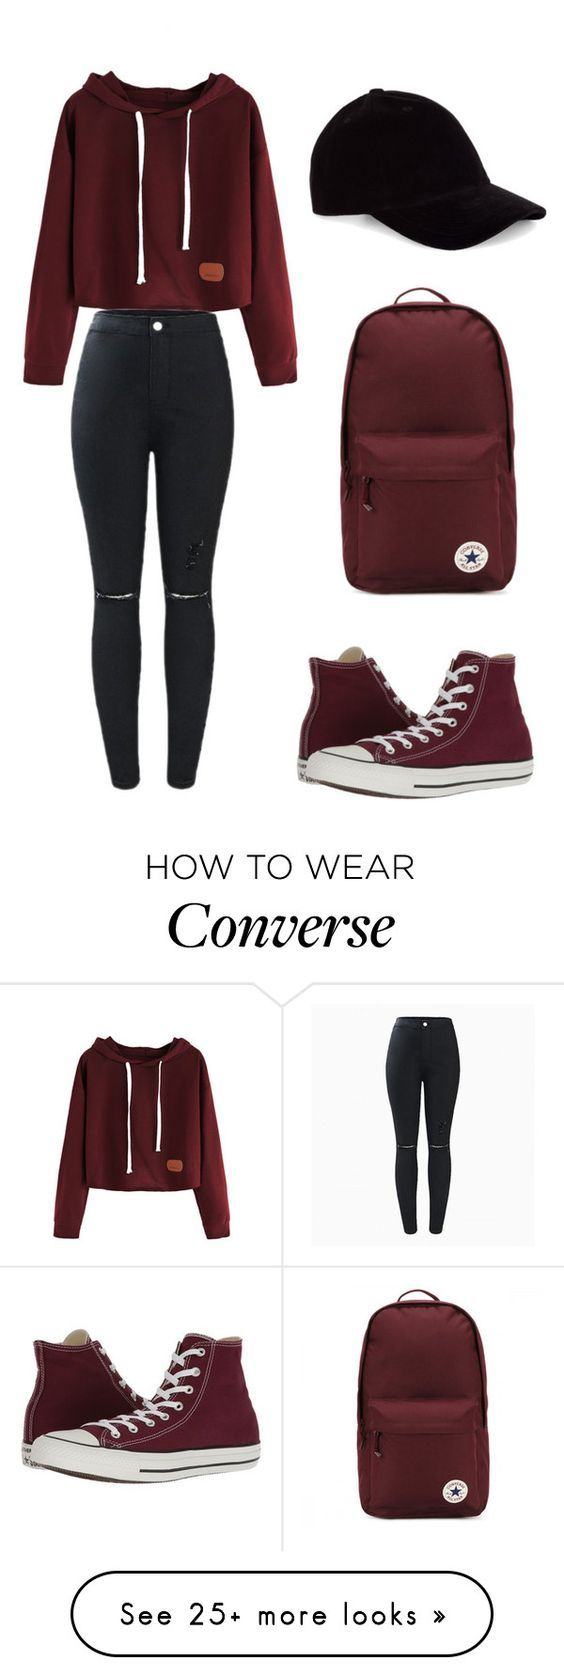 converse-factory$29 on